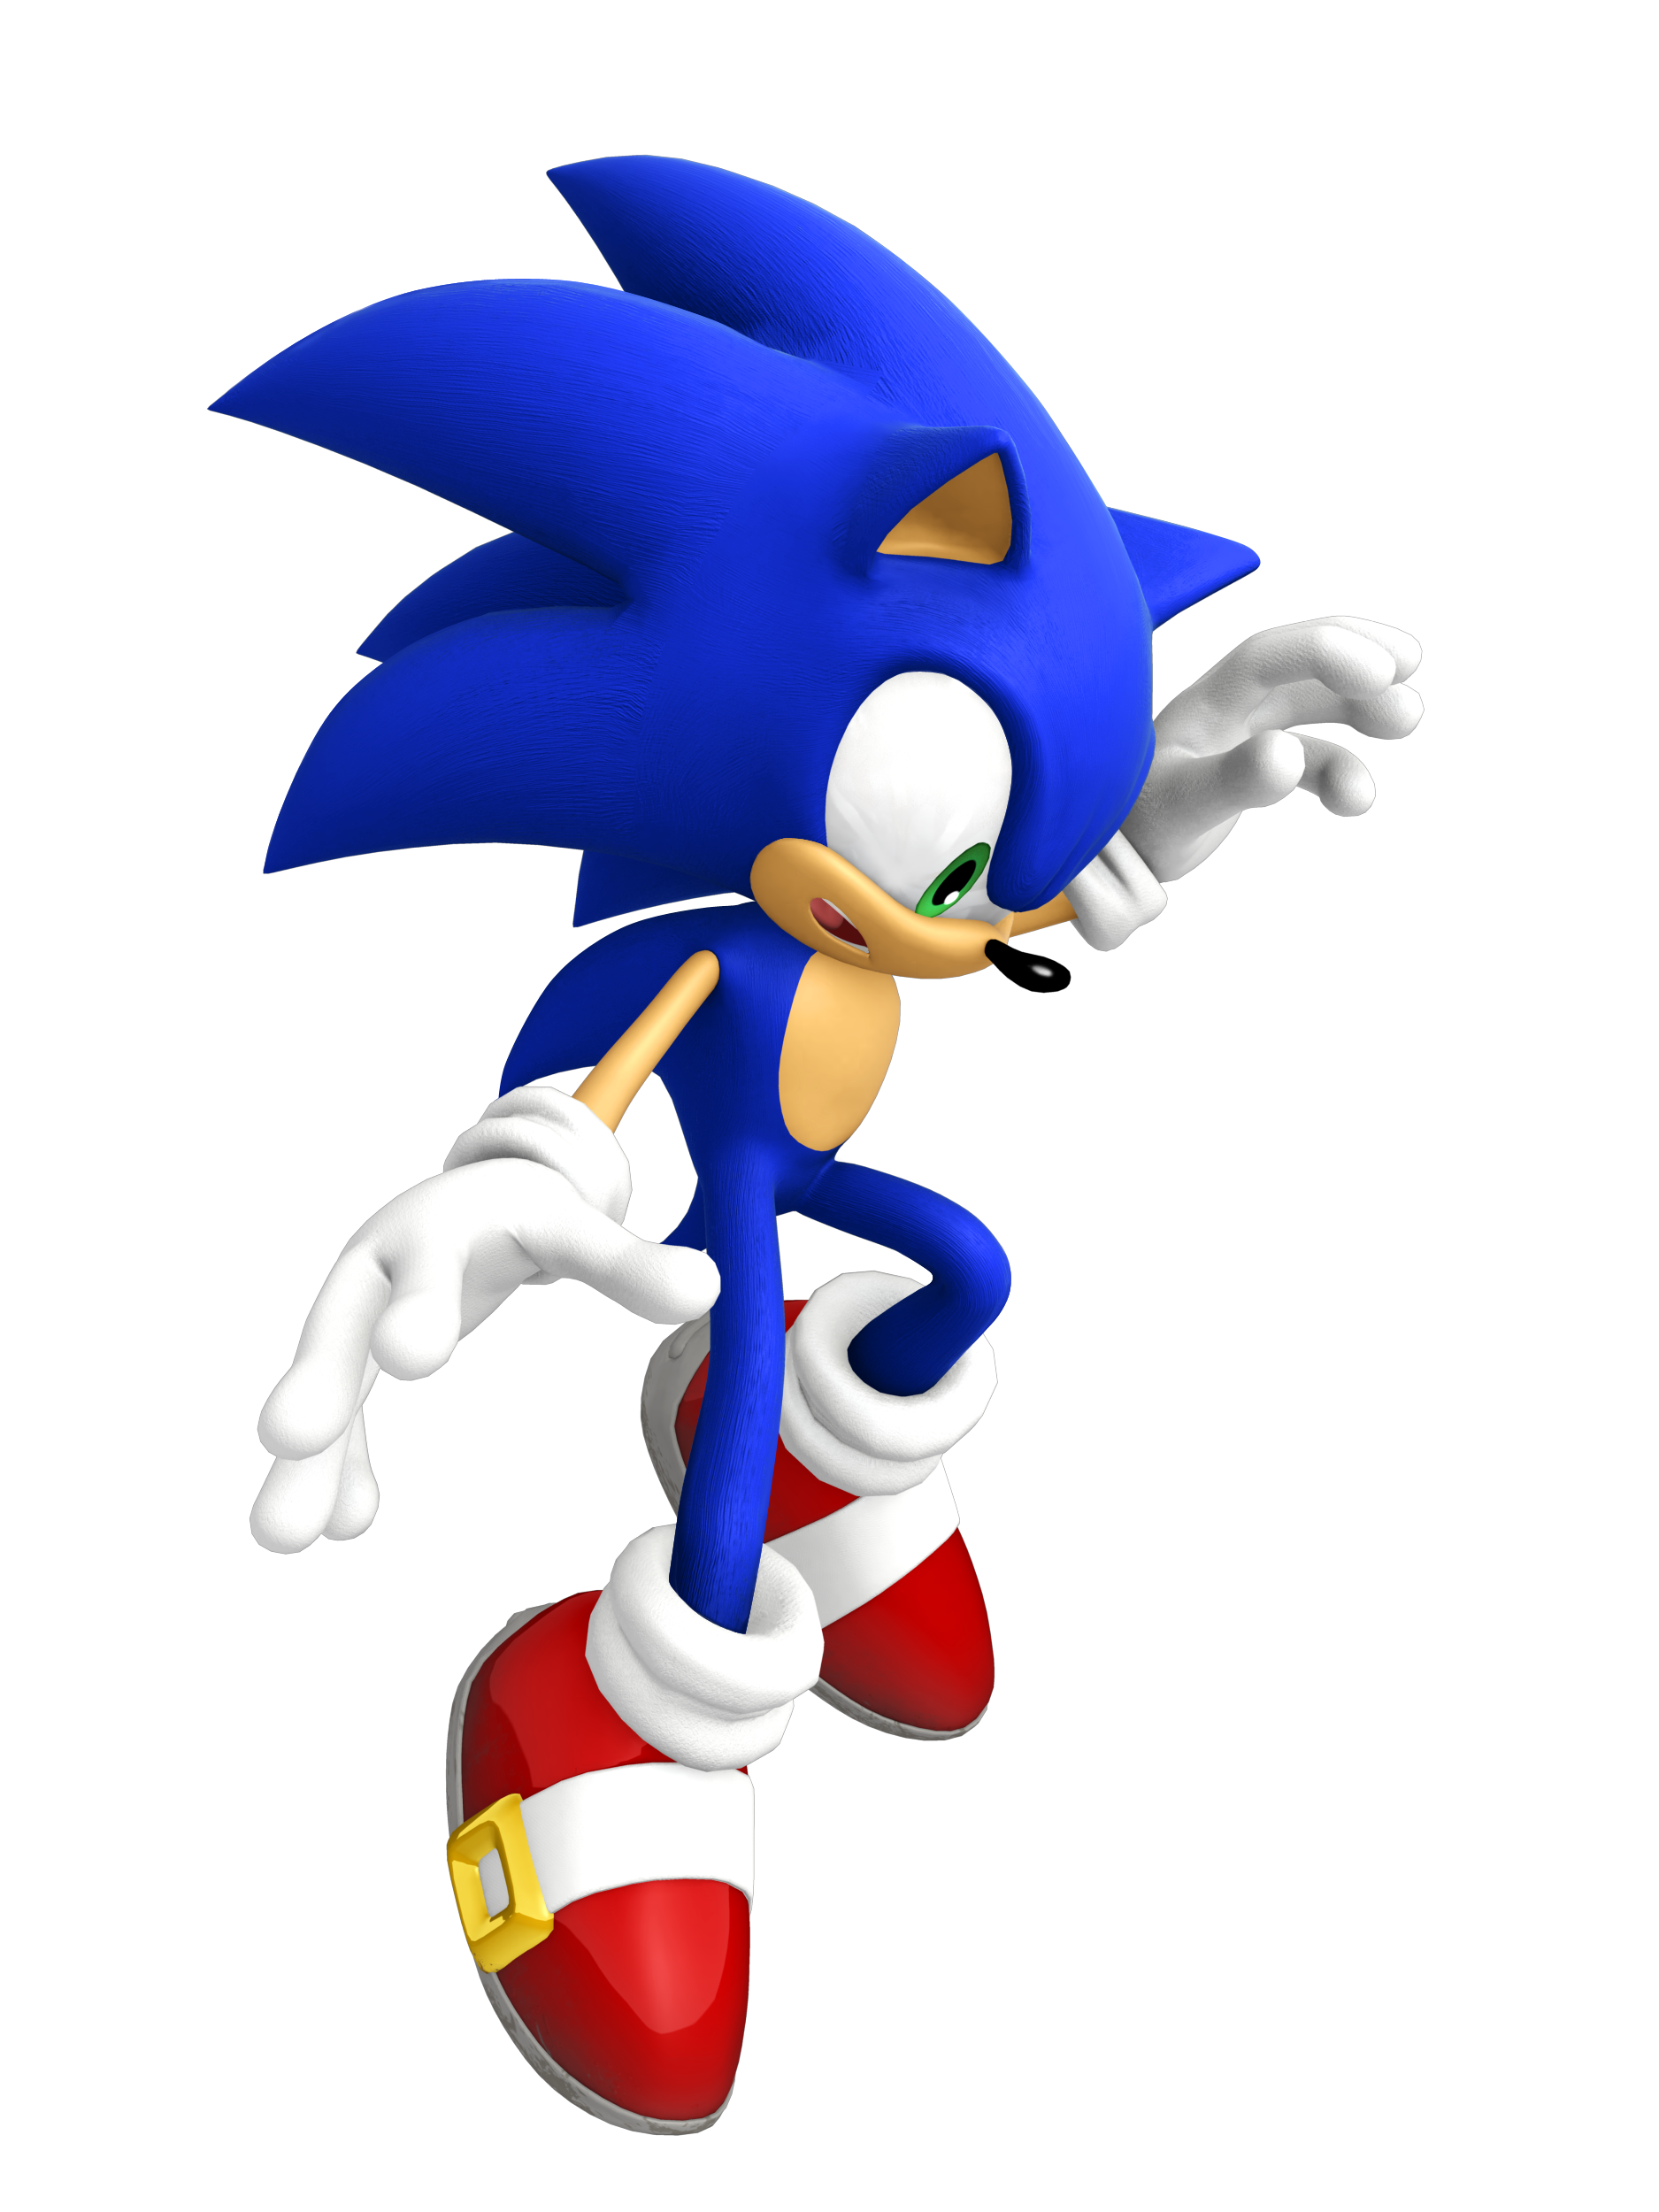 Image sonic falling episode. Hedgehog clipart angry